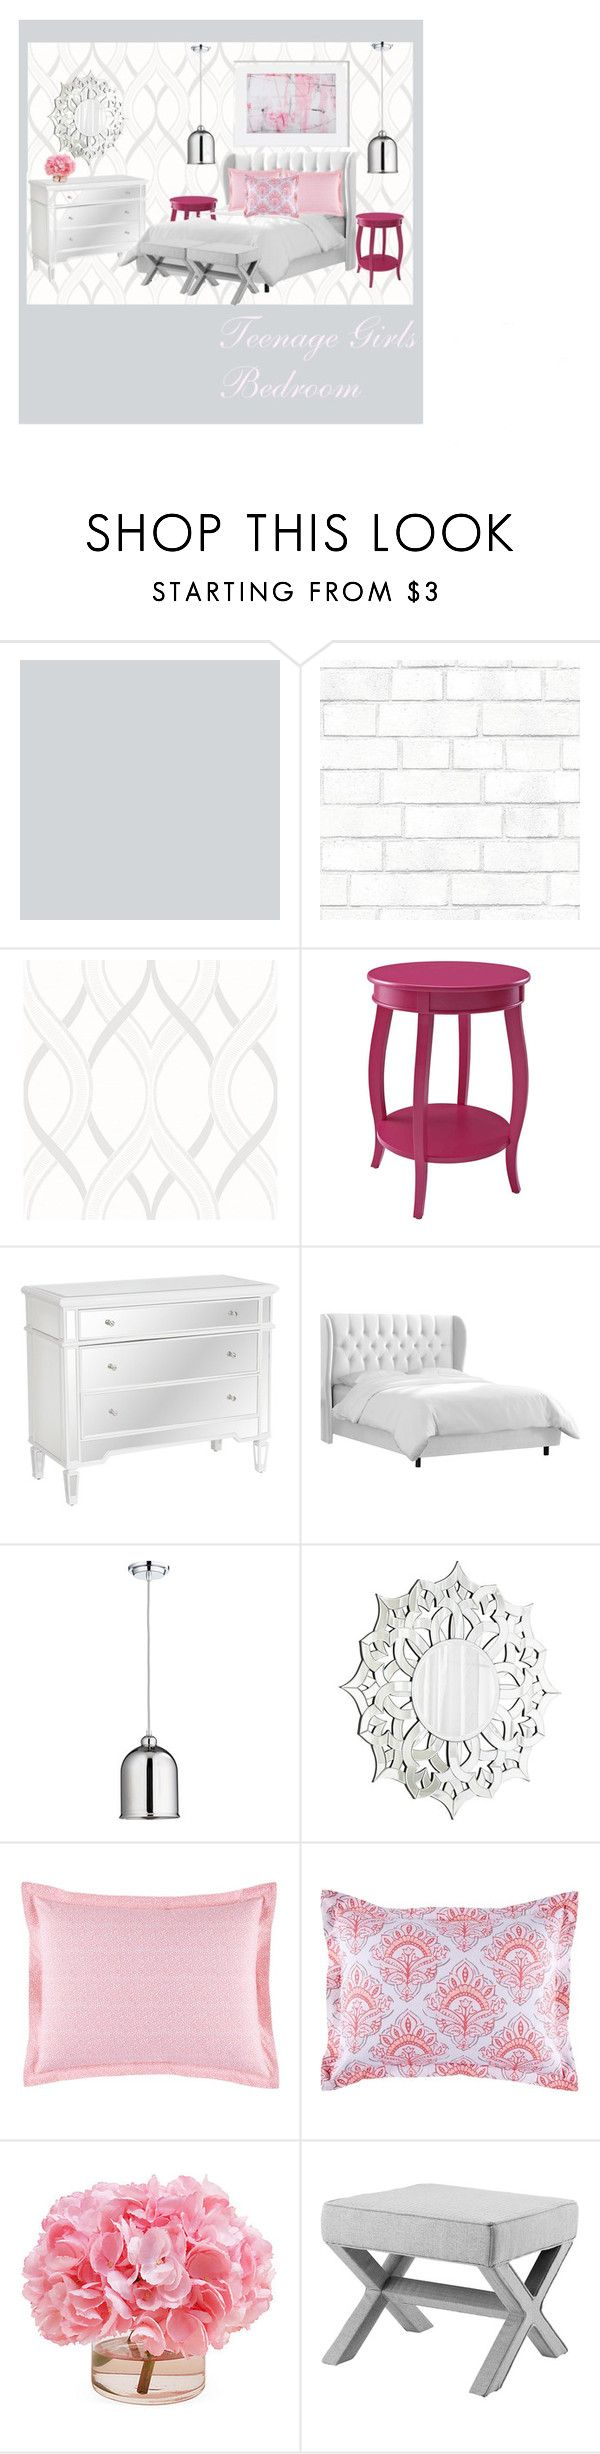 """""""Teenage Girls Bedroom"""" by christietanupi on Polyvore featuring interior, interiors, interior design, home, home decor, interior decorating, Tempaper, Brewster Home Fashions, Madison and Worlds Away"""